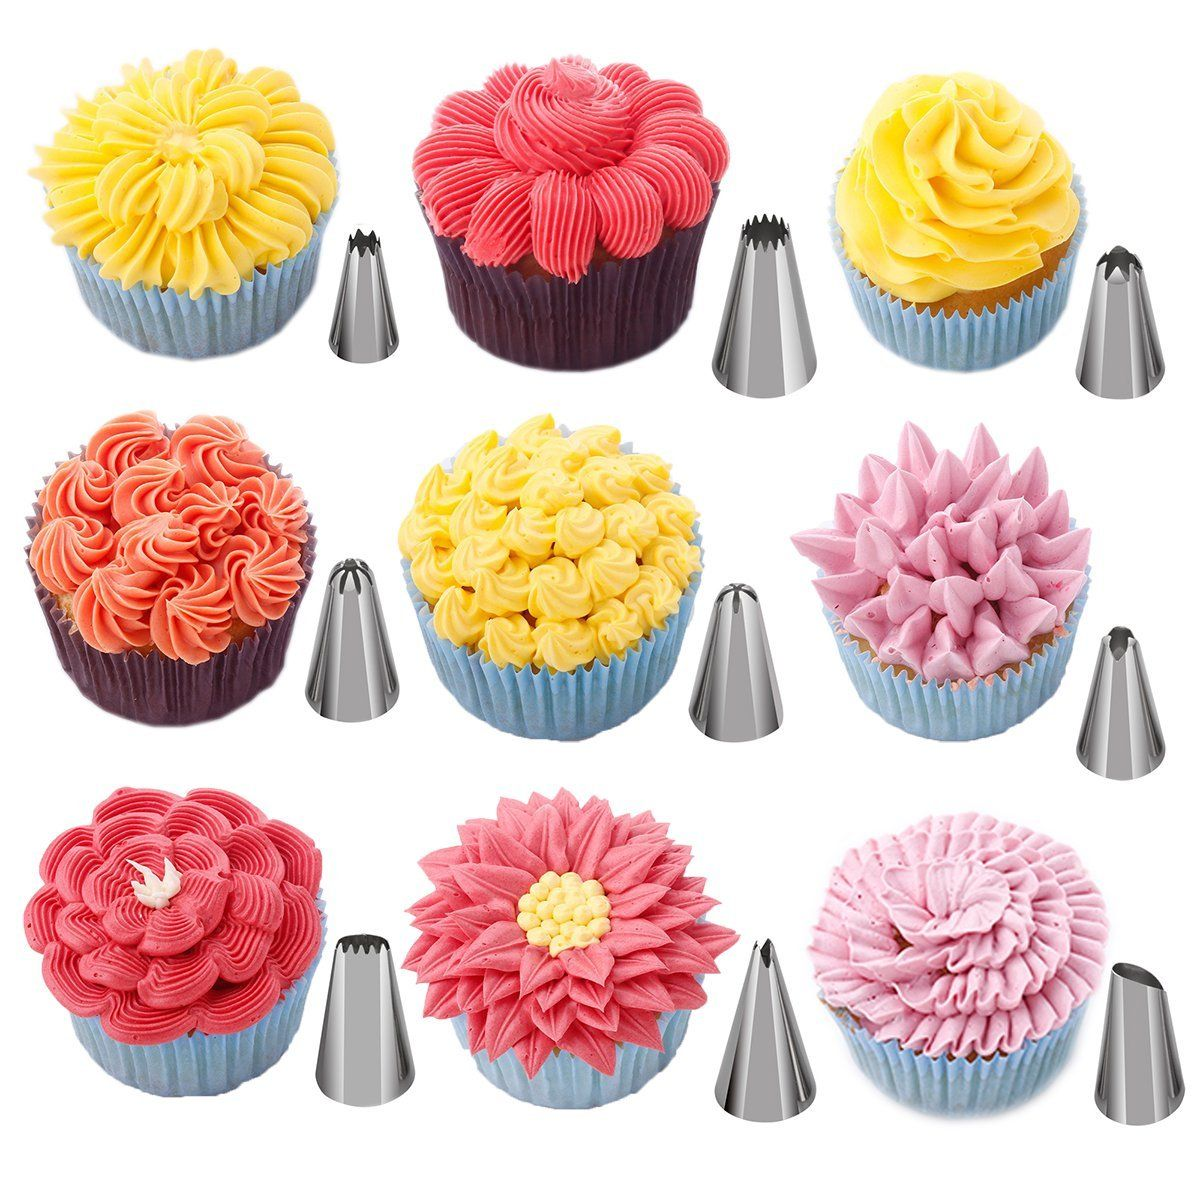 Other Baking Accessories Home & Garden Cake Decoration Floral Petal Petals Cutter Stainless Steel Decorating Tools Xrau Cheap Sales 50%